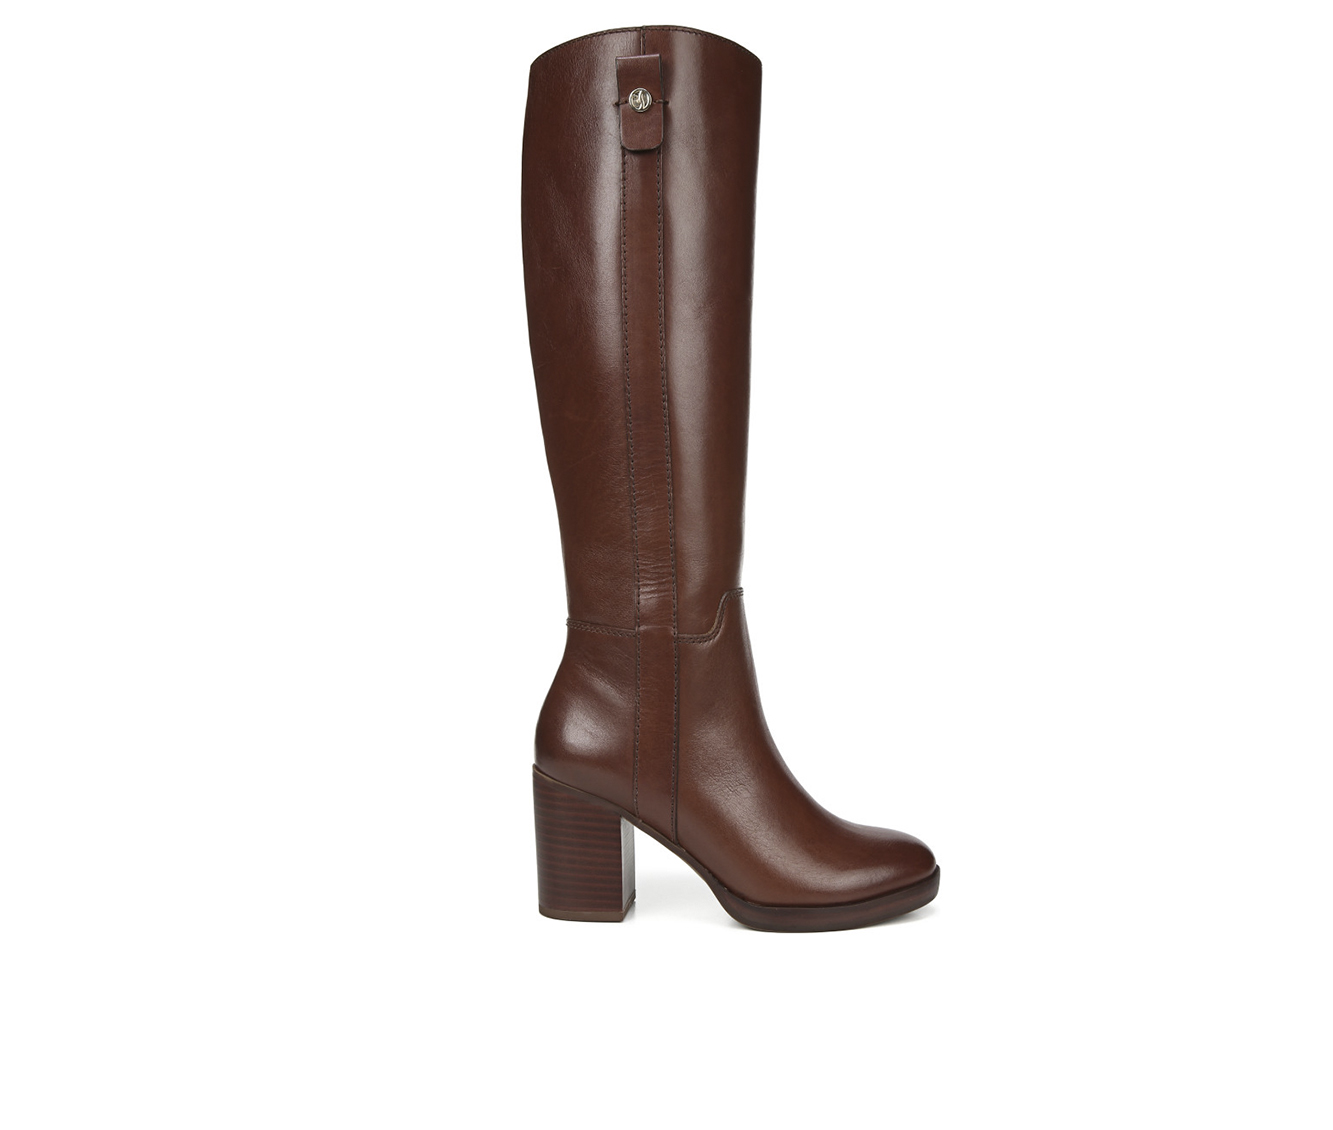 Franco Sarto Kendra WC Women's Boots (Brown - Leather)